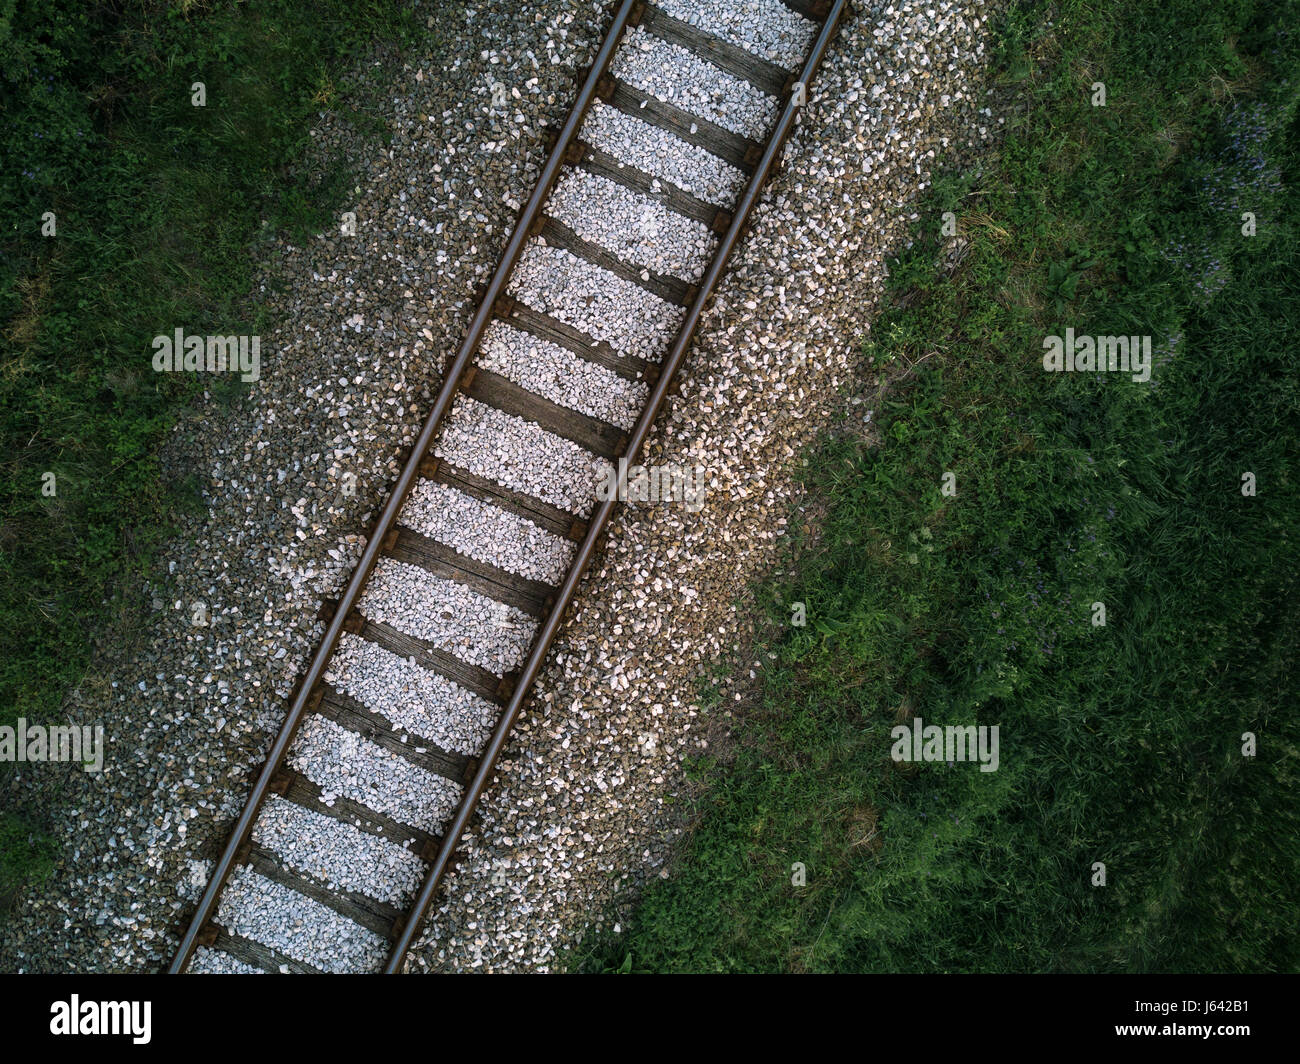 Aerial view of railway track through countryside, drone top view pov of rails as abstract background - Stock Image